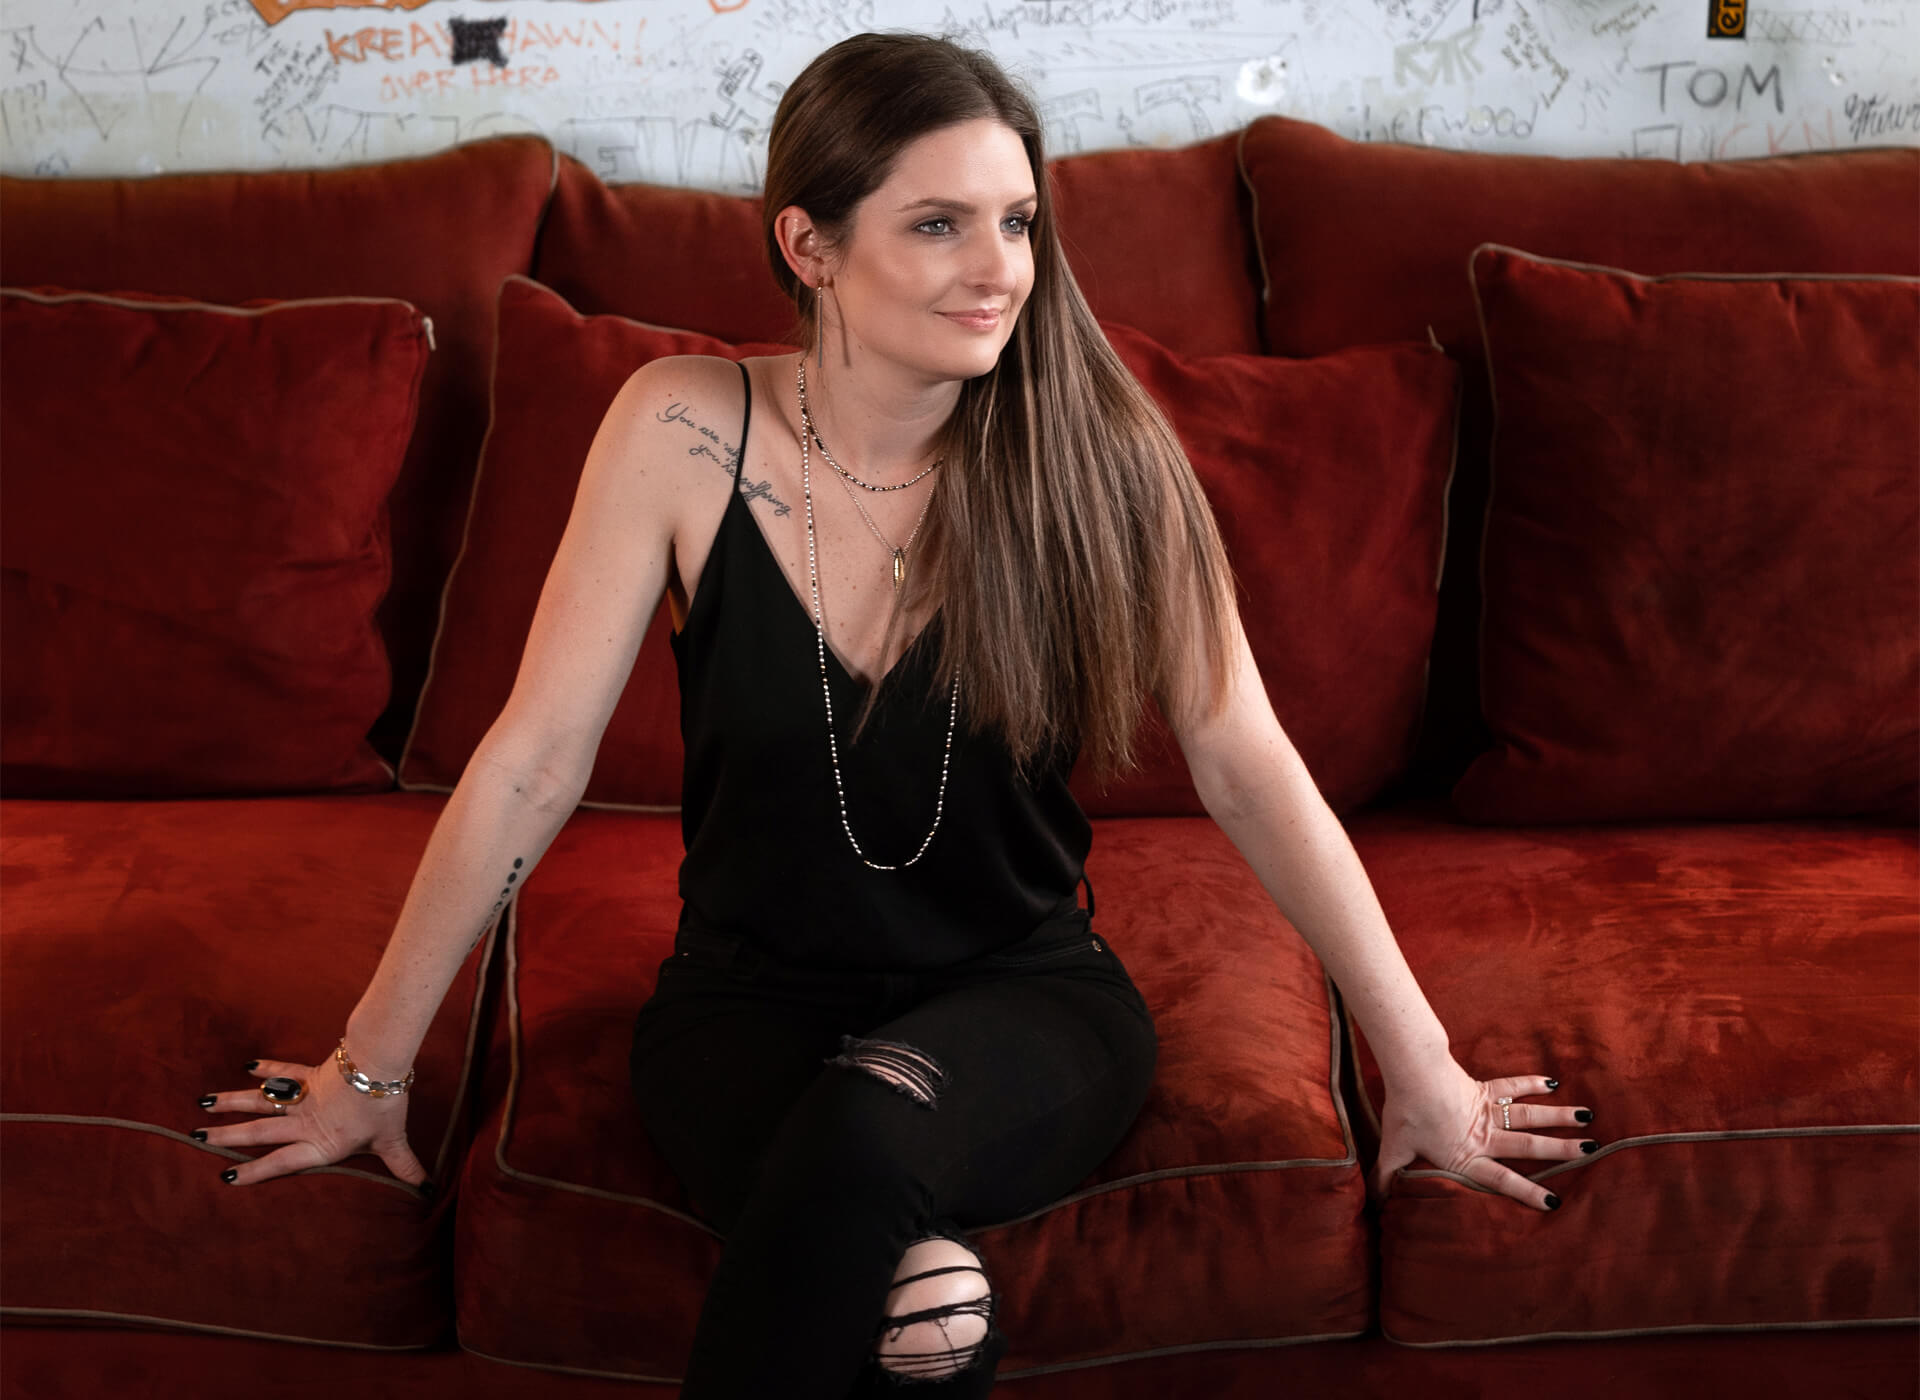 Young woman with long brown hair pulled to one side, is wearing a black tank top and sitting on a wide red velvet couch.